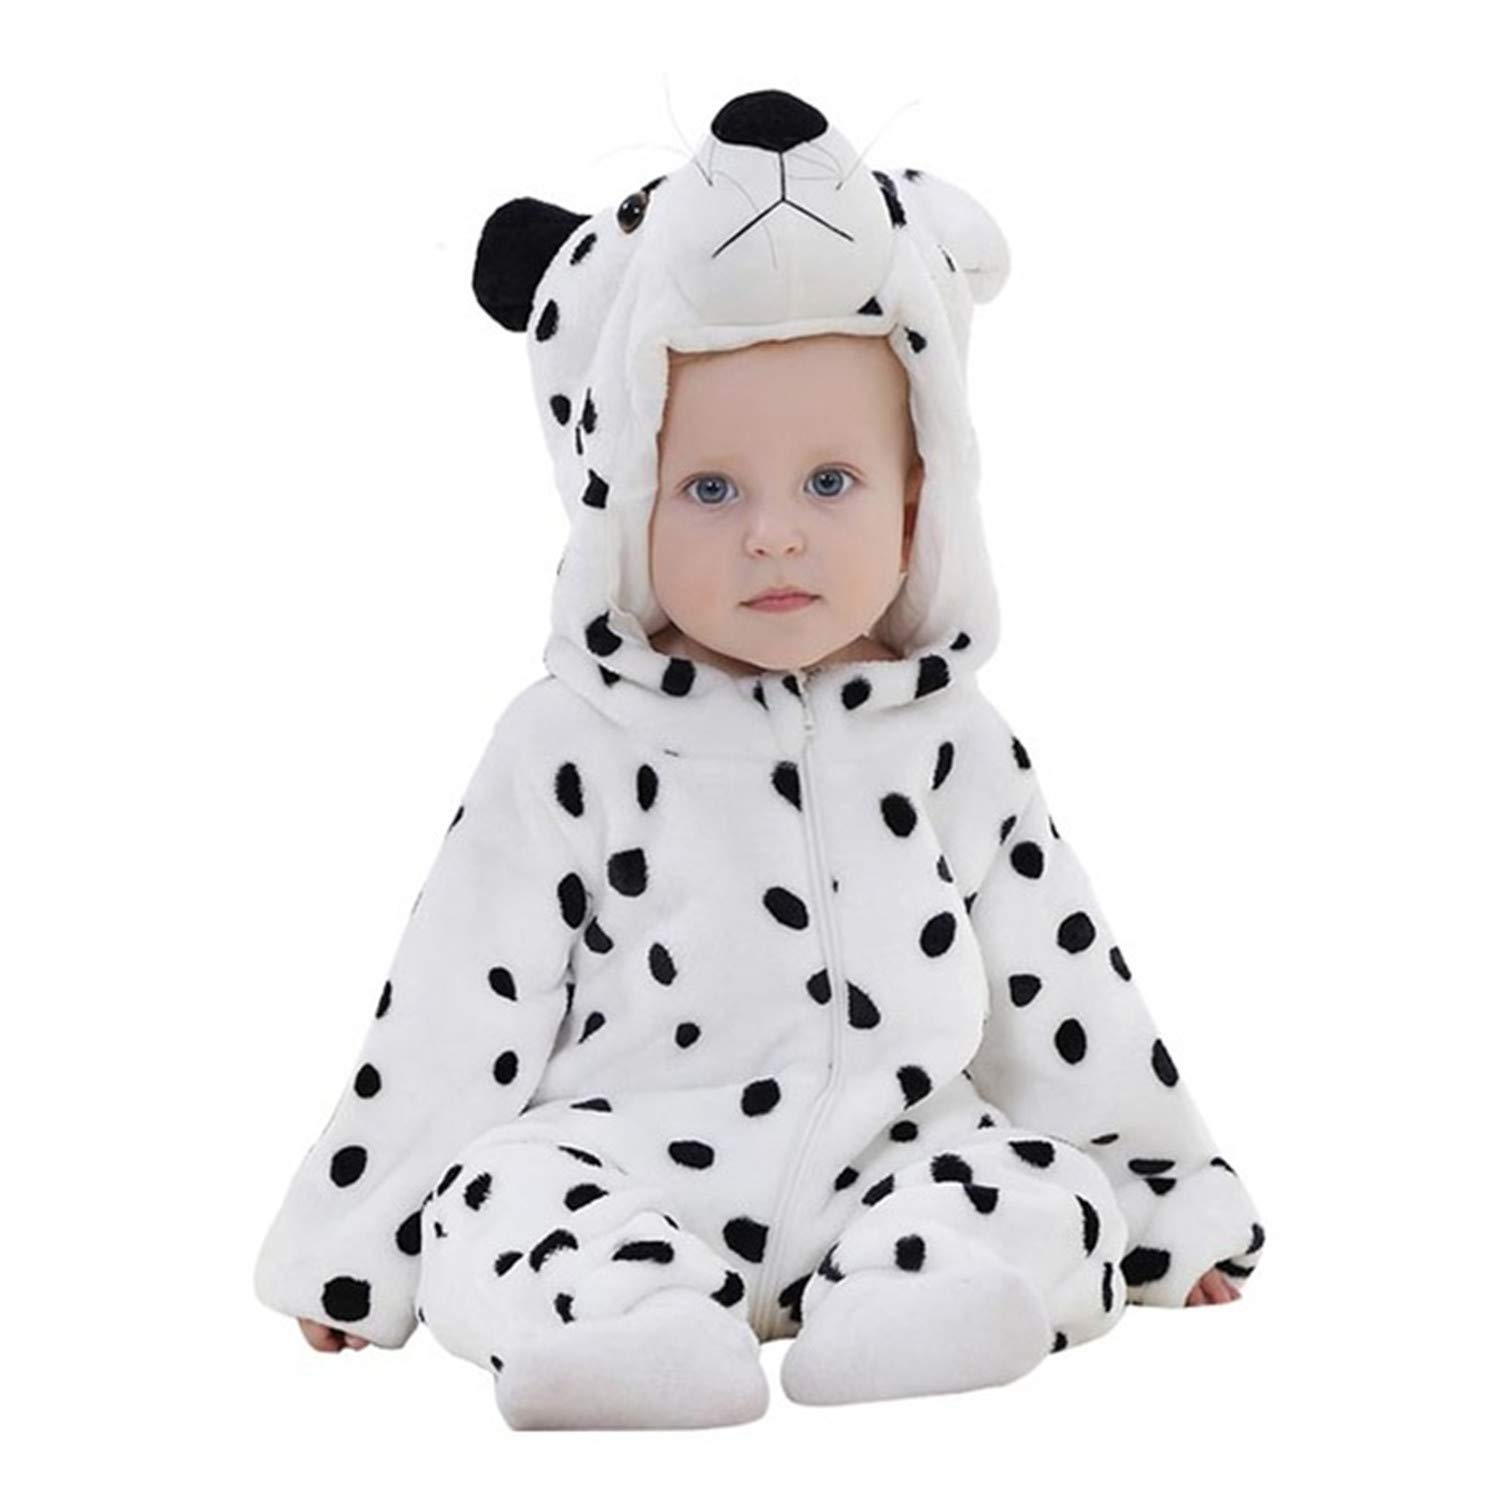 Evan Fordd Cute Infant Romper Baby Boys Girls Jumpsuit Clothing Hooded Toddler Costumes